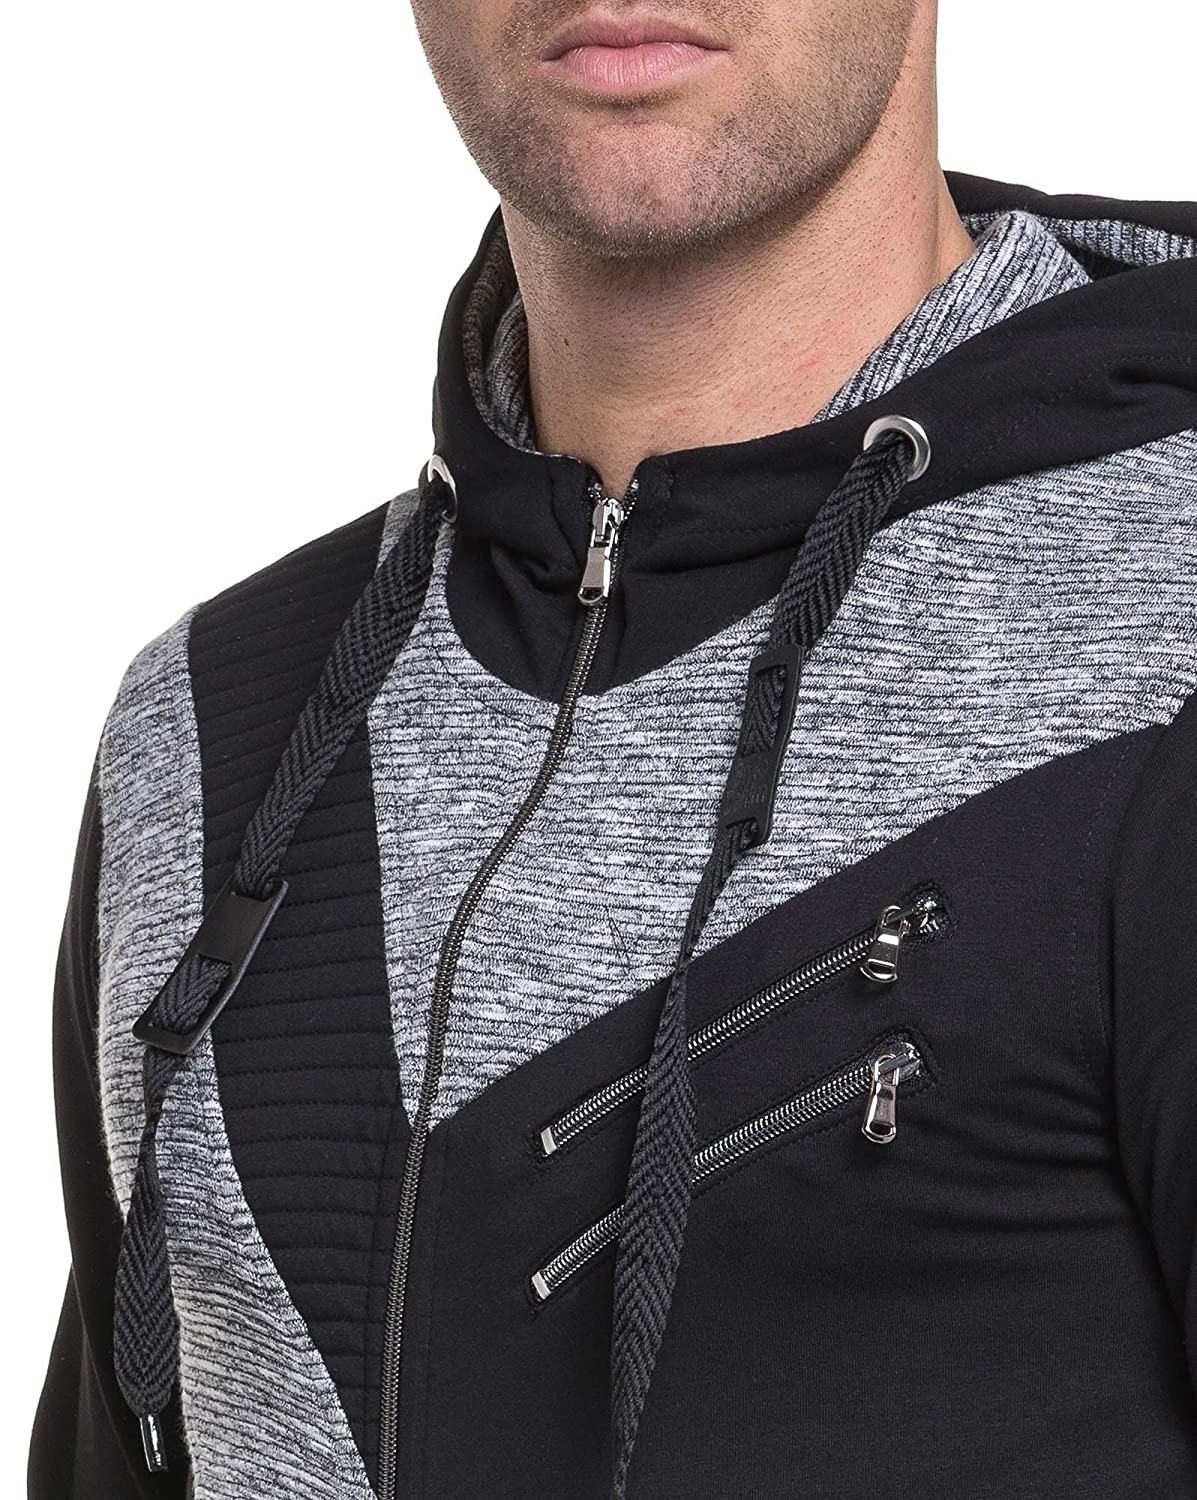 BLZ jeans - Cardigan sweater black and gray marl hooded man and zips